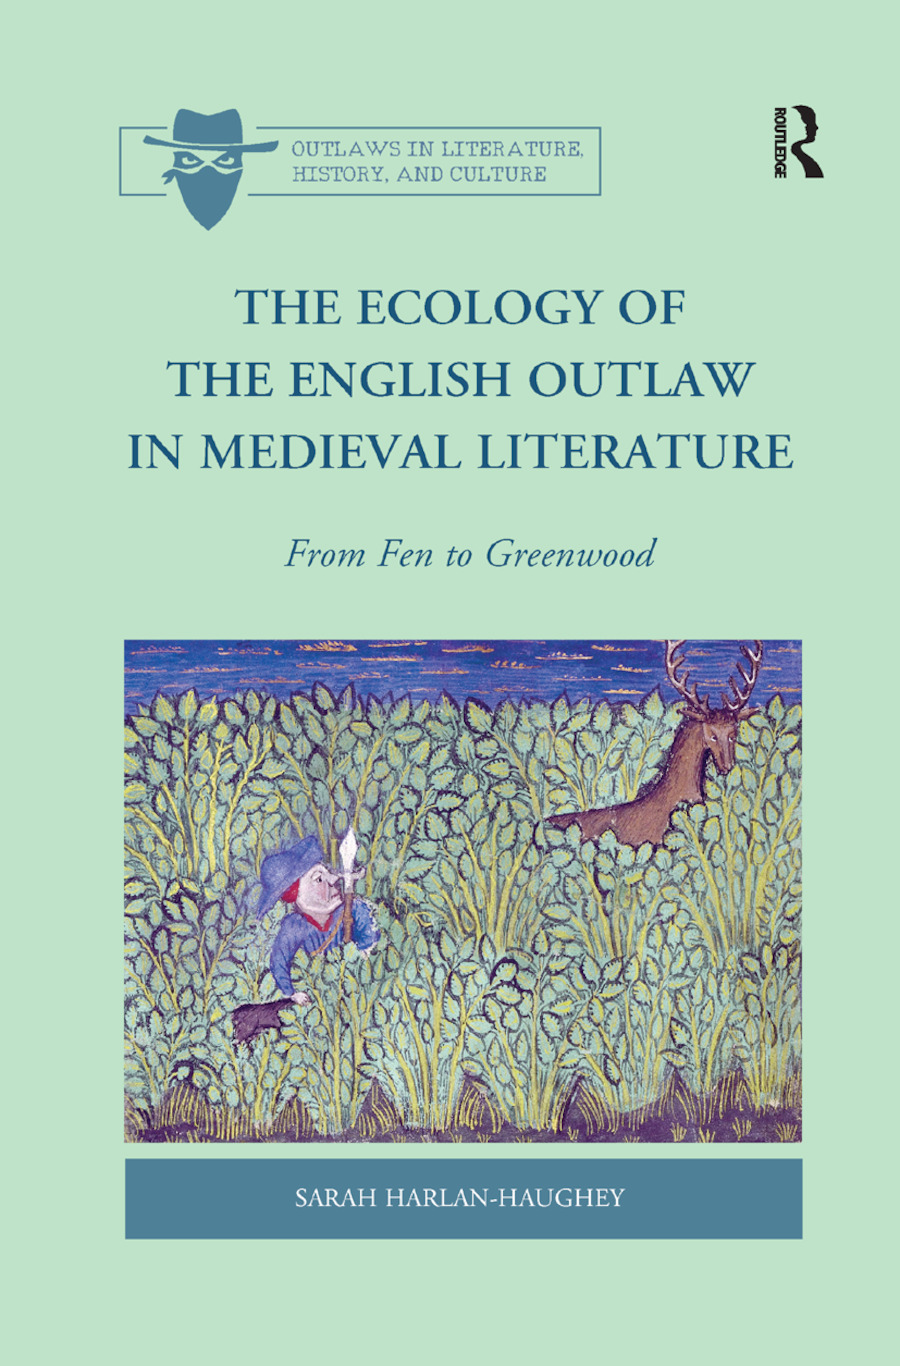 The Ecology of the English Outlaw in Medieval Literature